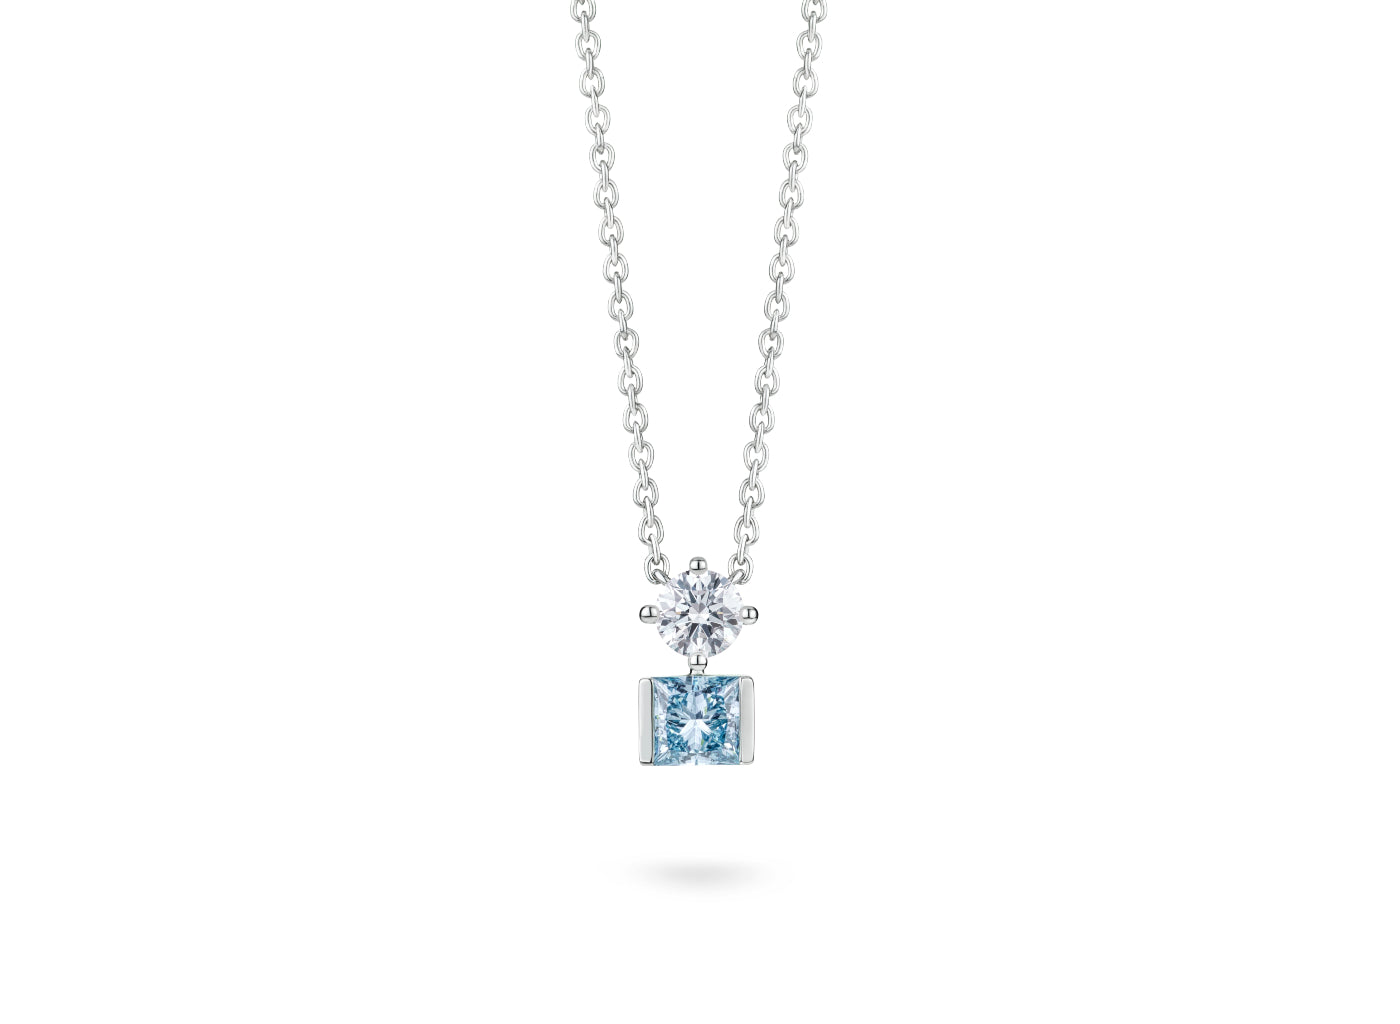 Front view of Mismatched Two Stone 1 carat pendant with blue and white diamonds